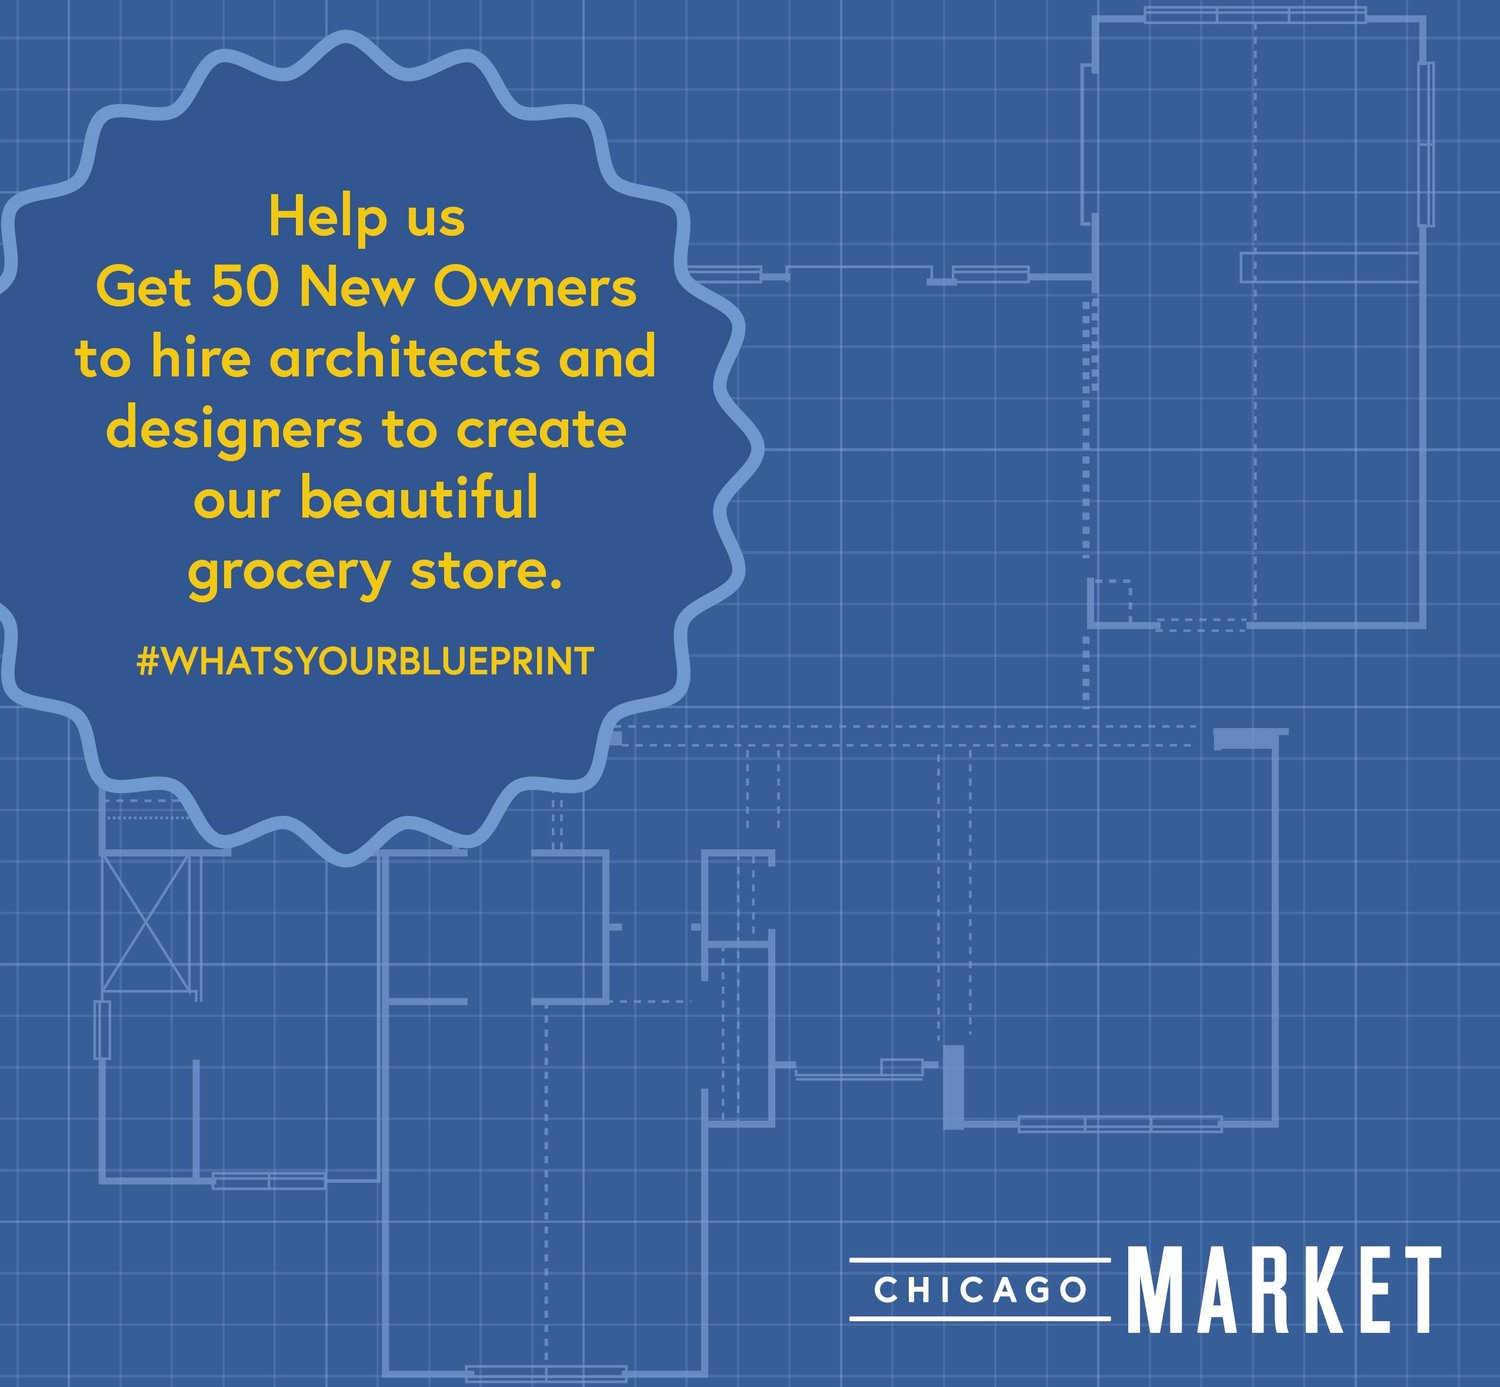 #WhatsYourBlueprint Campaign